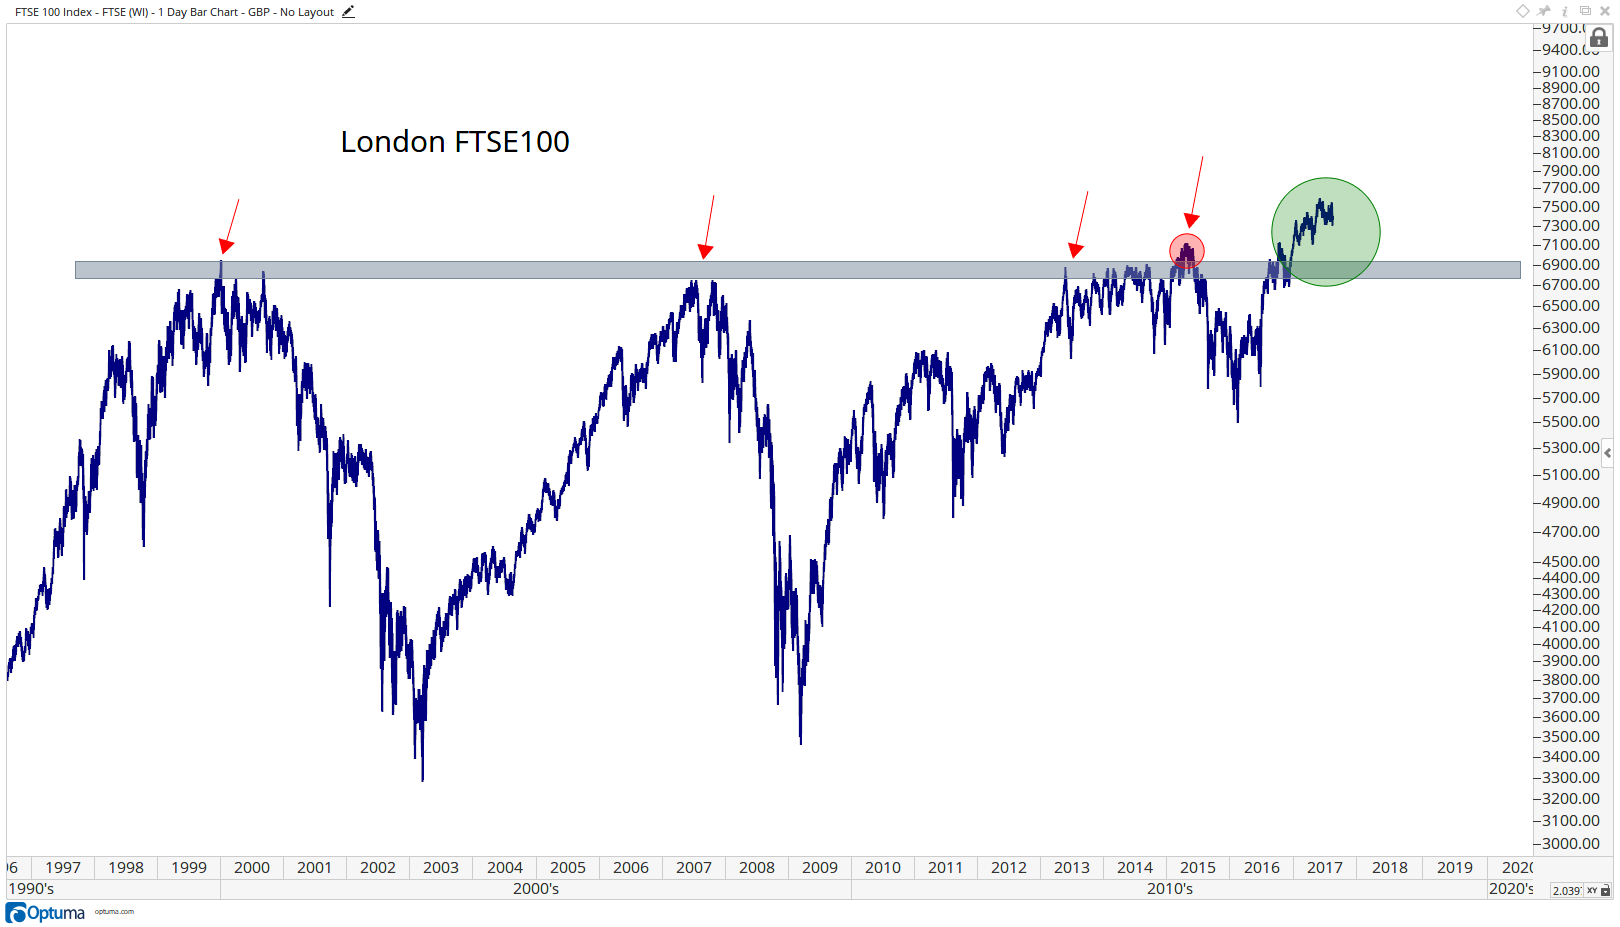 Charts In The World Right Now You Can See That While S P500 Broke Out 2017 Above Its Former Highs 2000 And 2007 London Finally